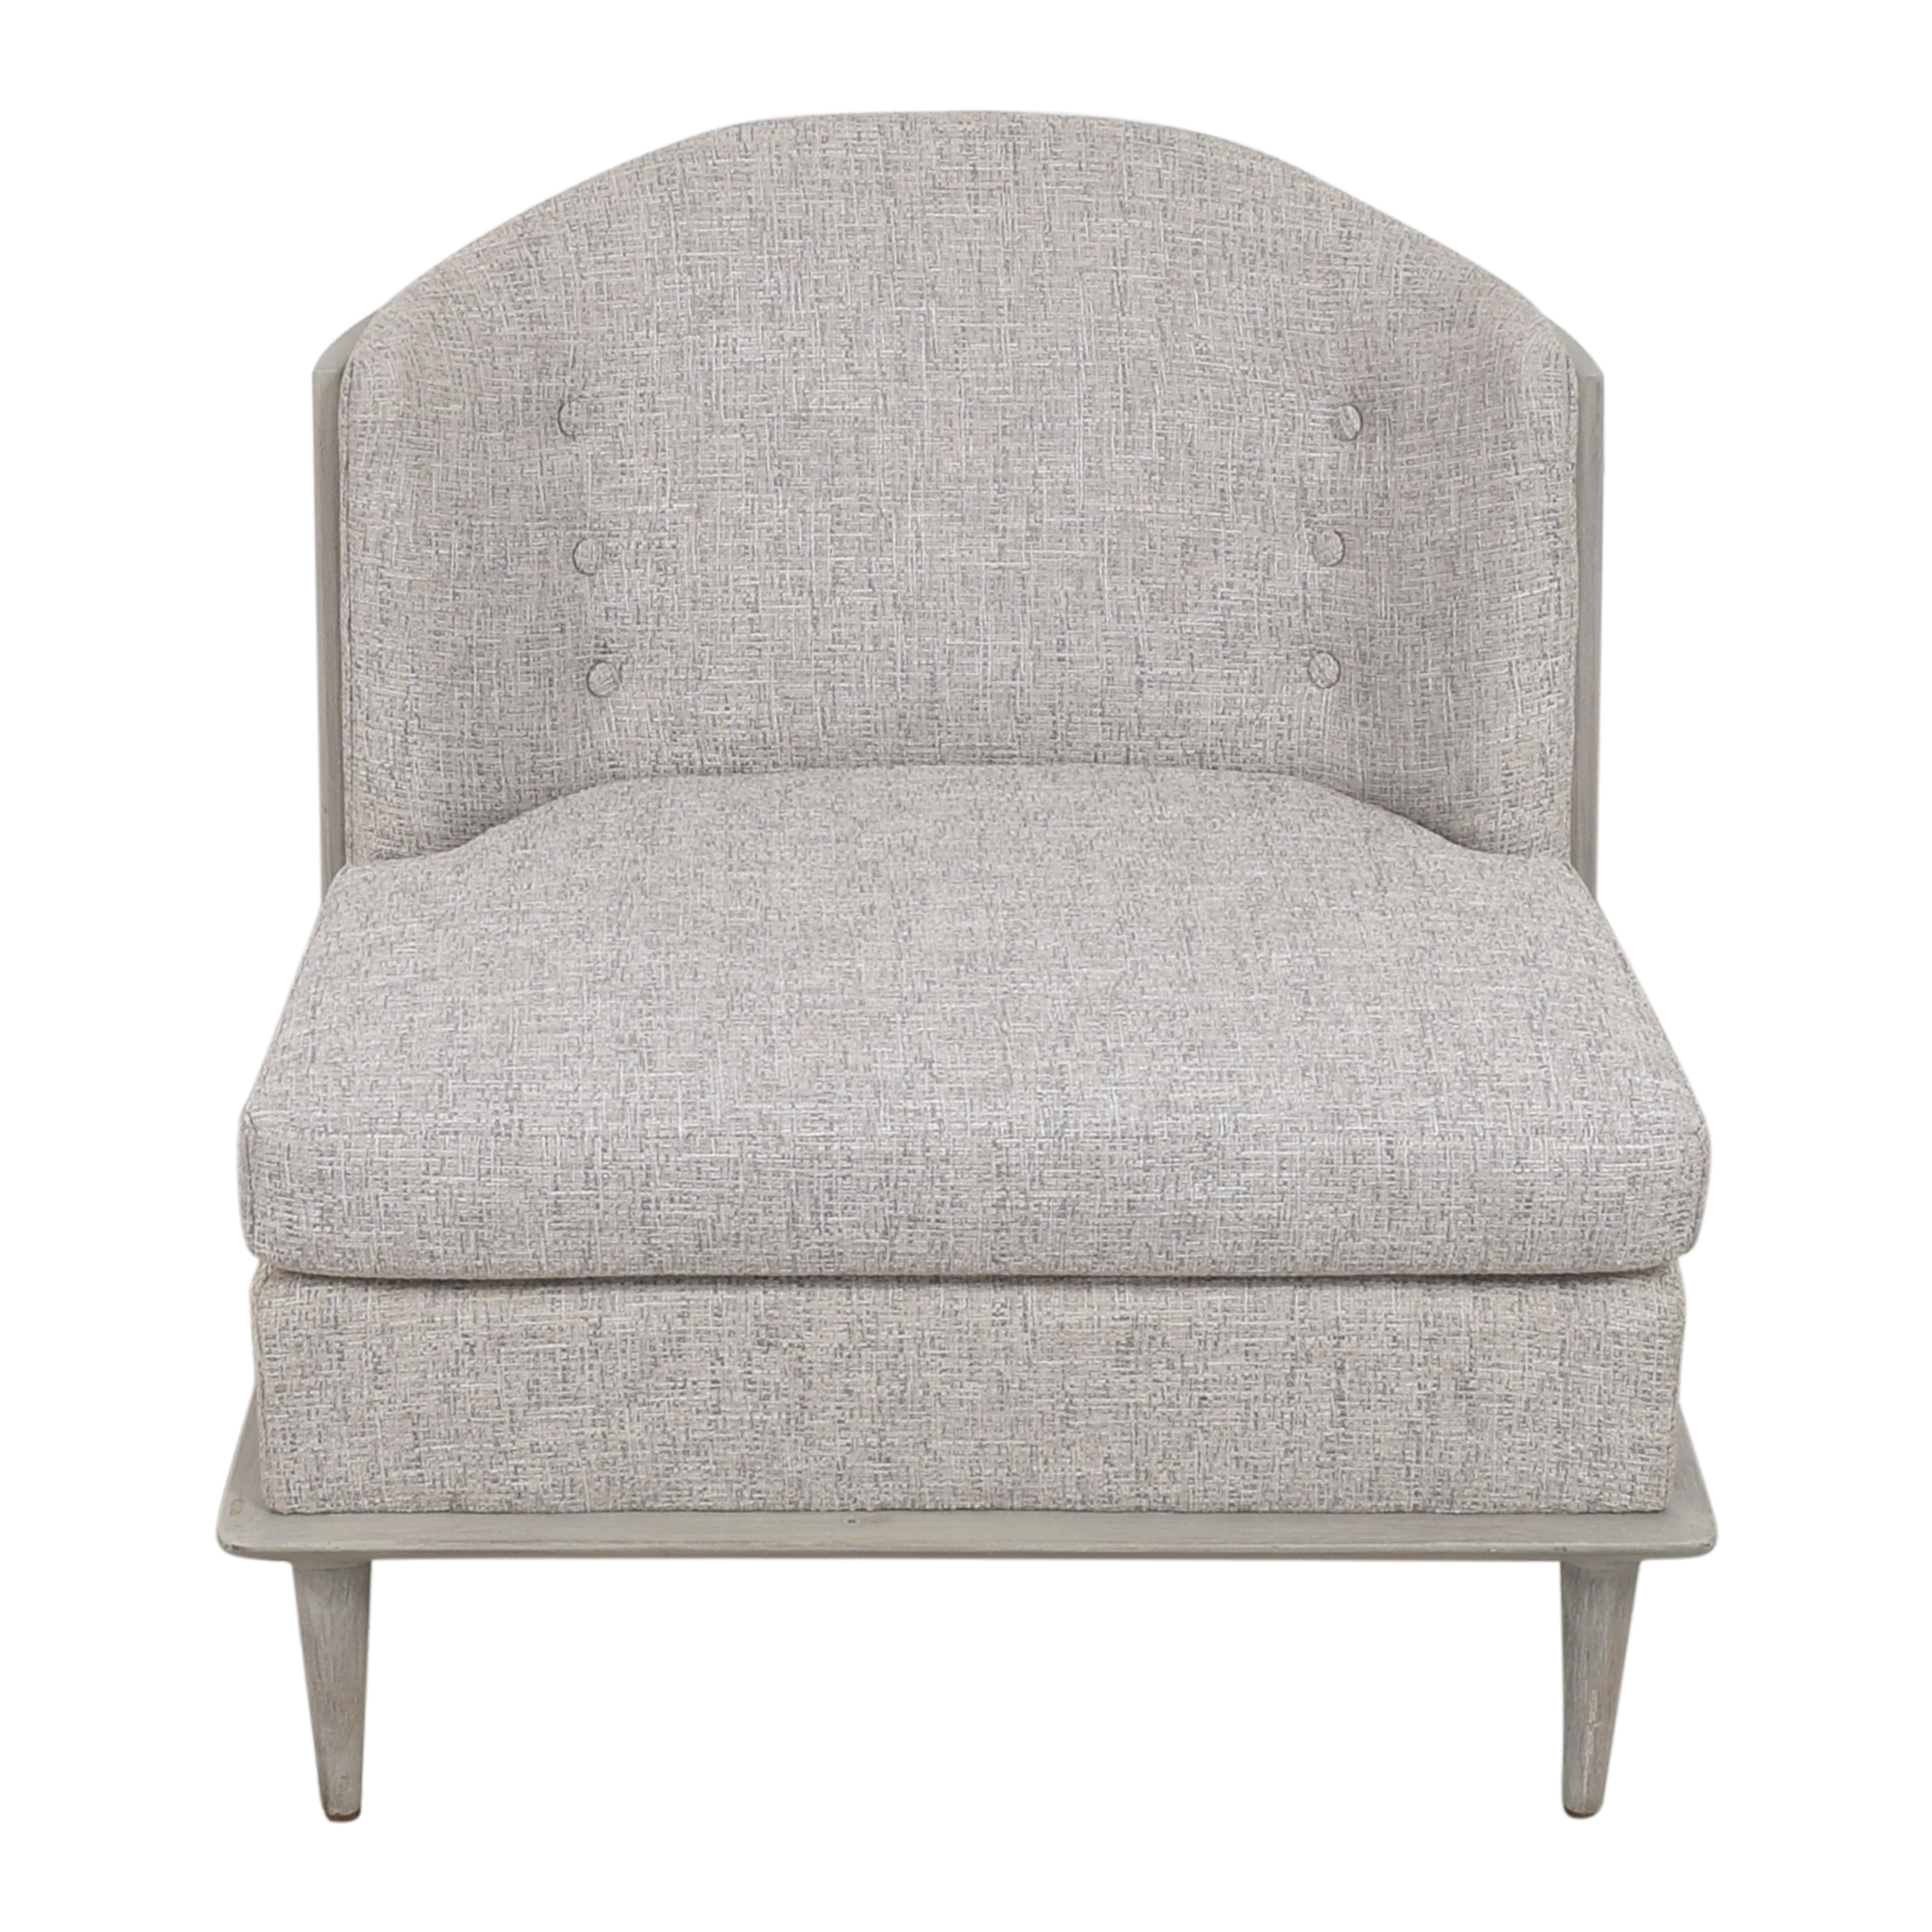 Global Views Occasional Chair sale